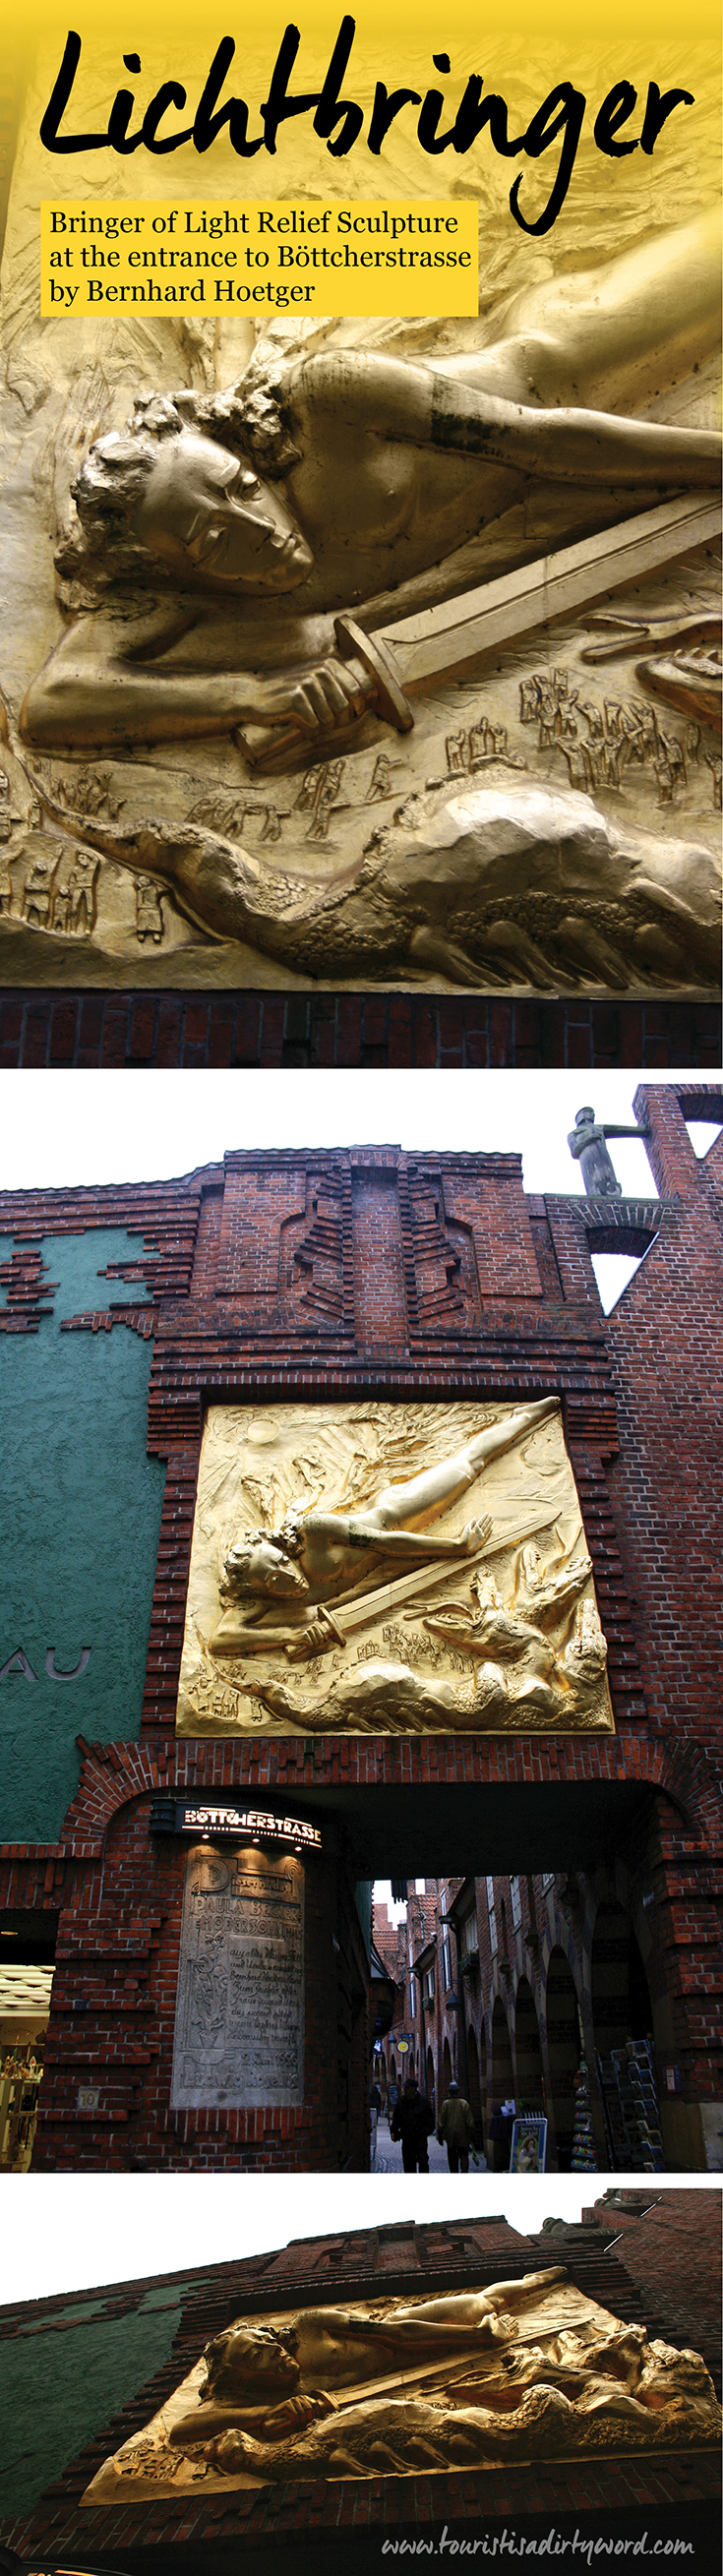 Beginning Your Stroll Through Böttcherstrasse at the Entrance with the Light Bringer Relief Sculpture • Bremen, Germany